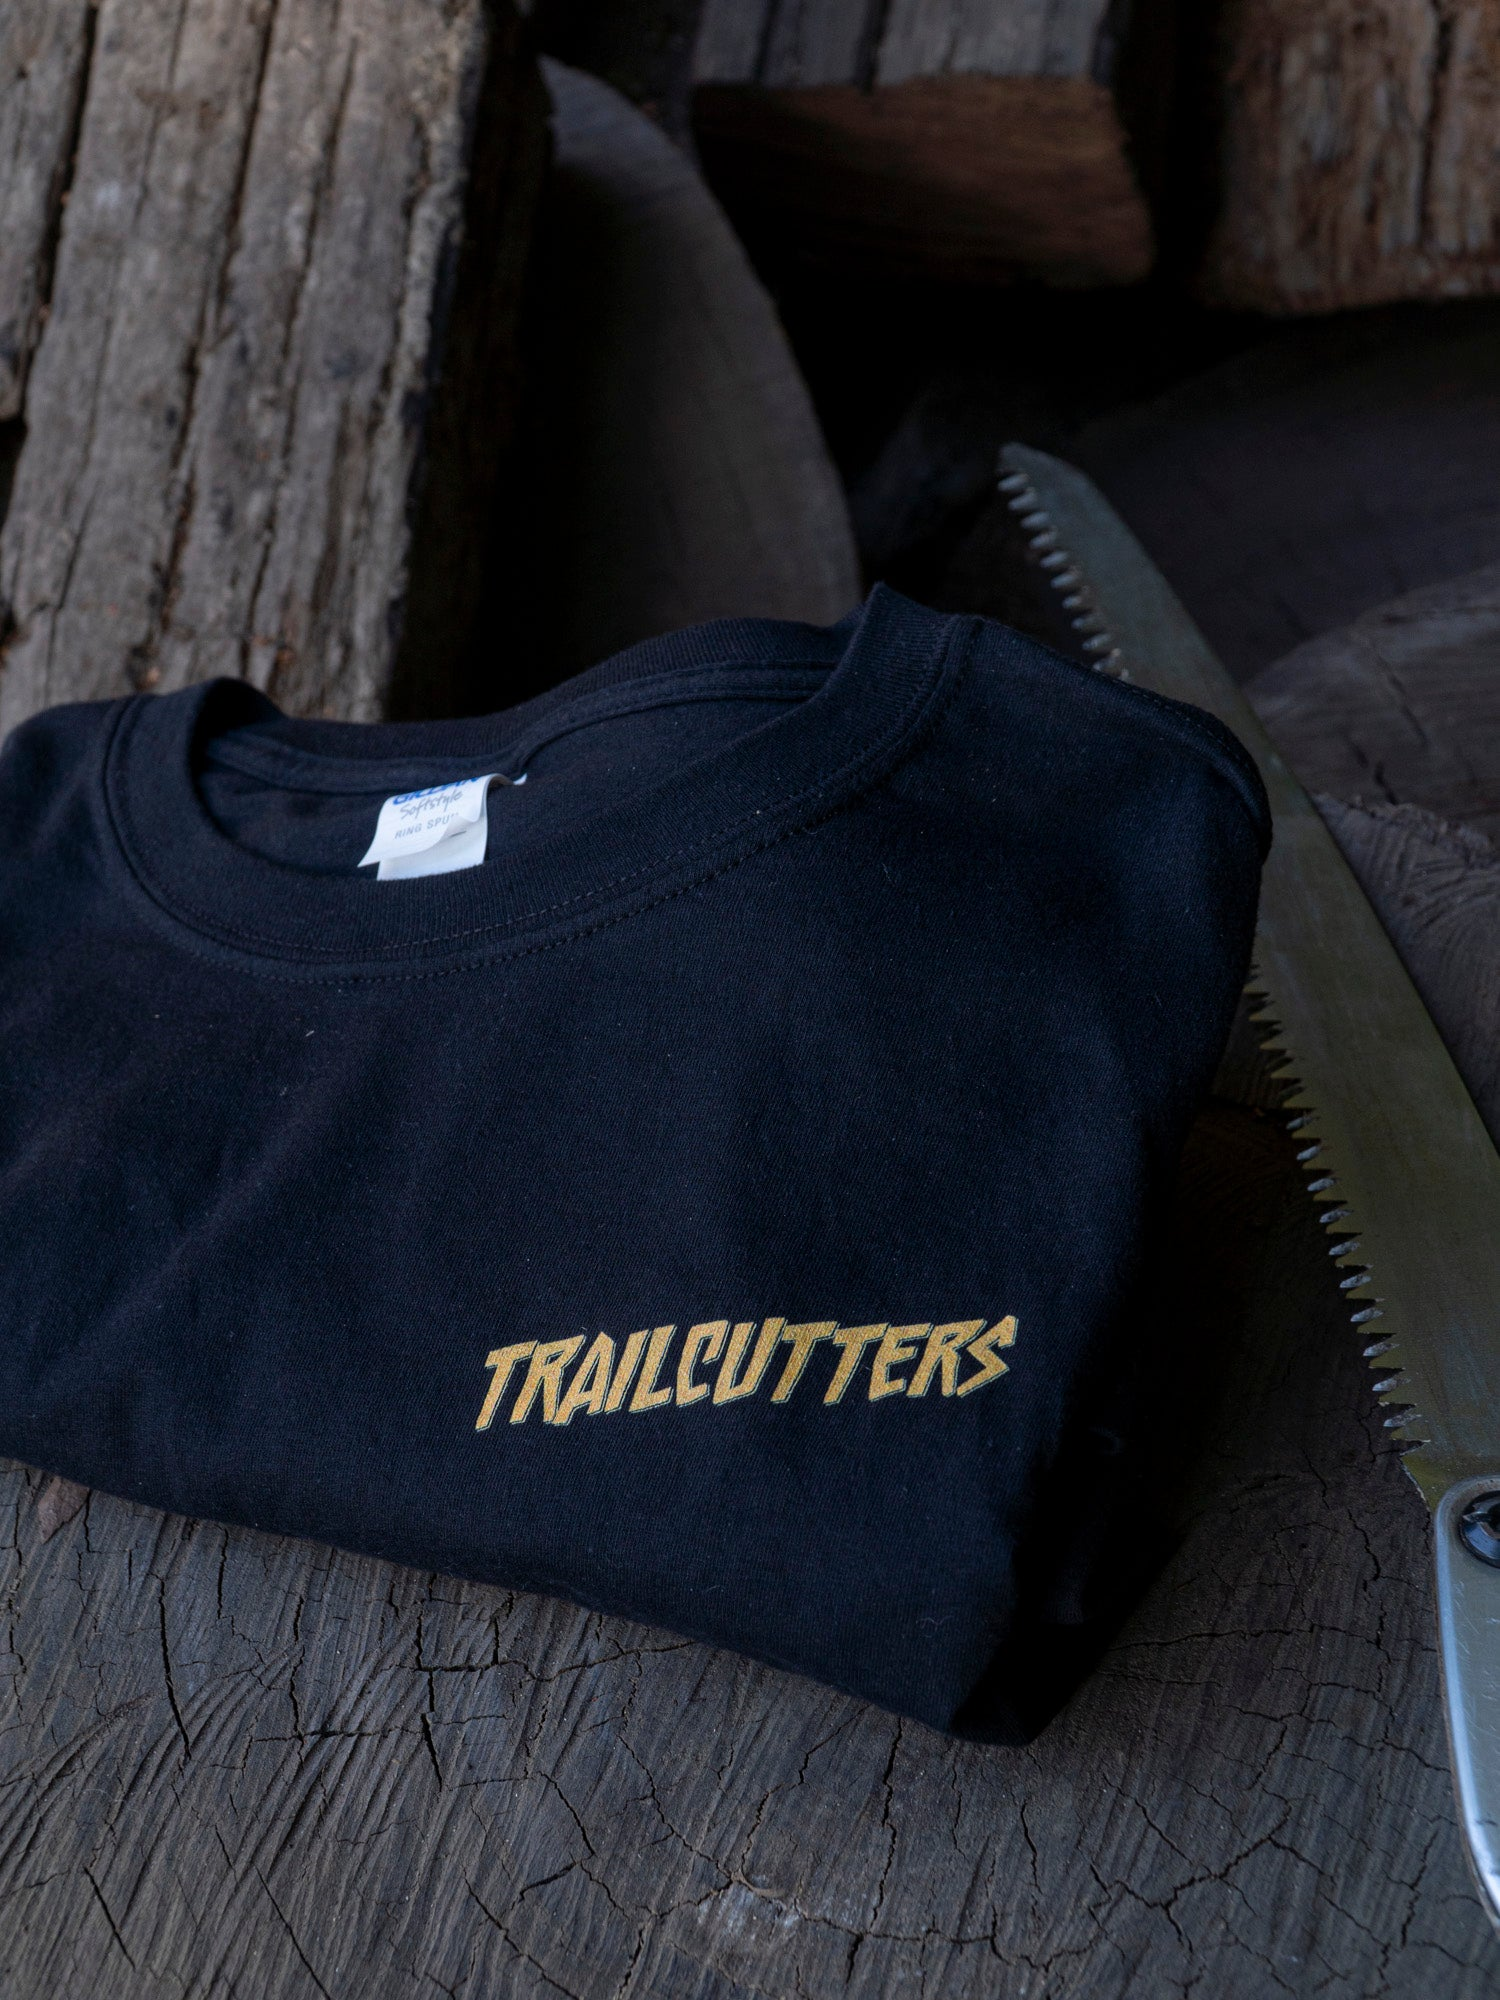 Trailcutters slash logo shirt